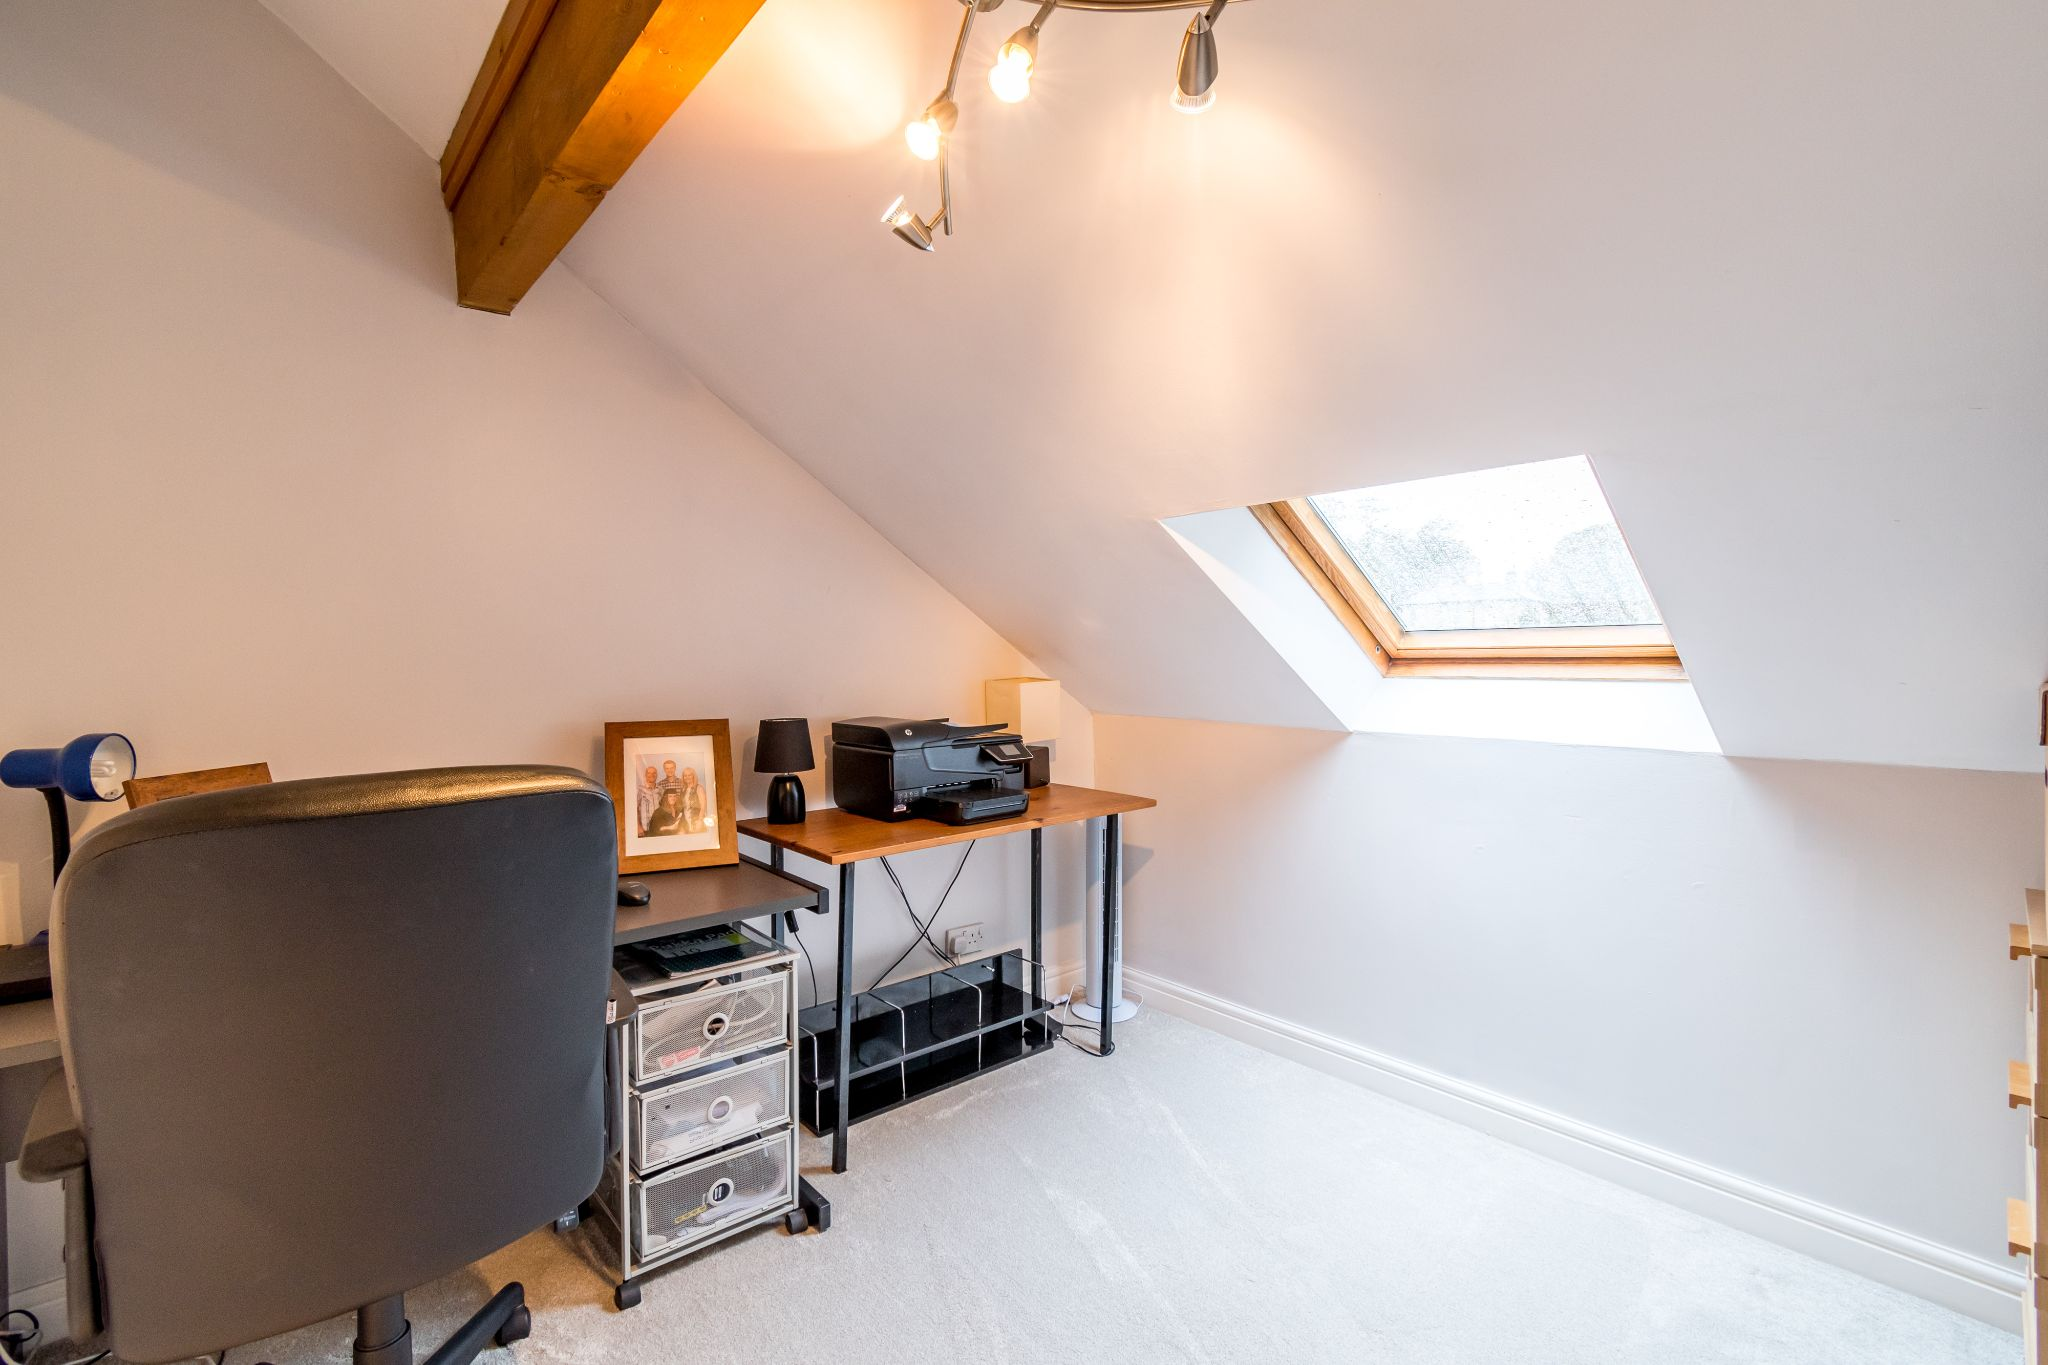 5 bedroom detached house For Sale in Brighouse - Bedroom 5